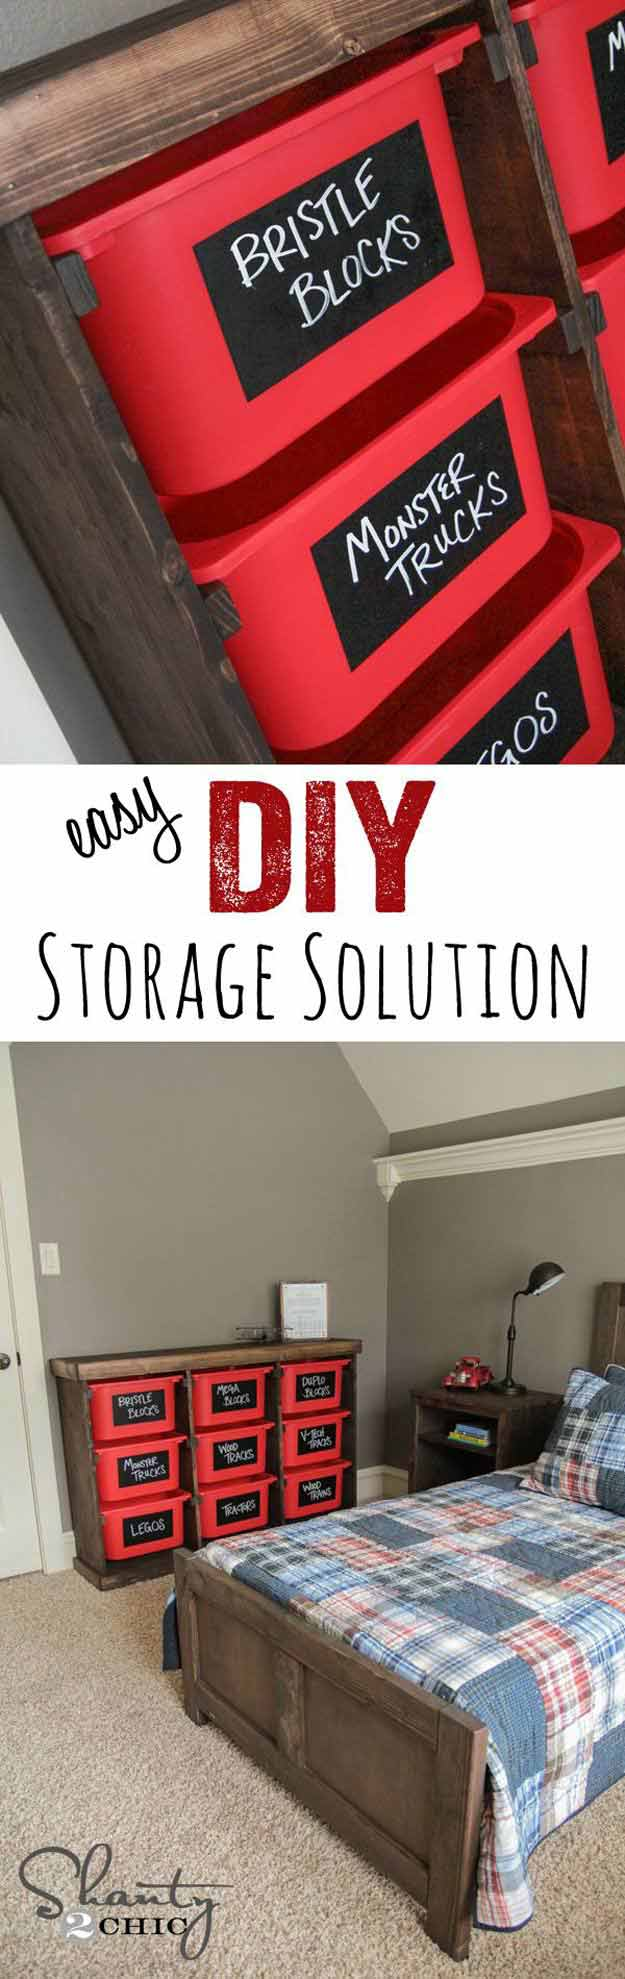 Easy DIY Toy Storage Idea | 24 Smart DIY Toy & Crafts Storage Solutions